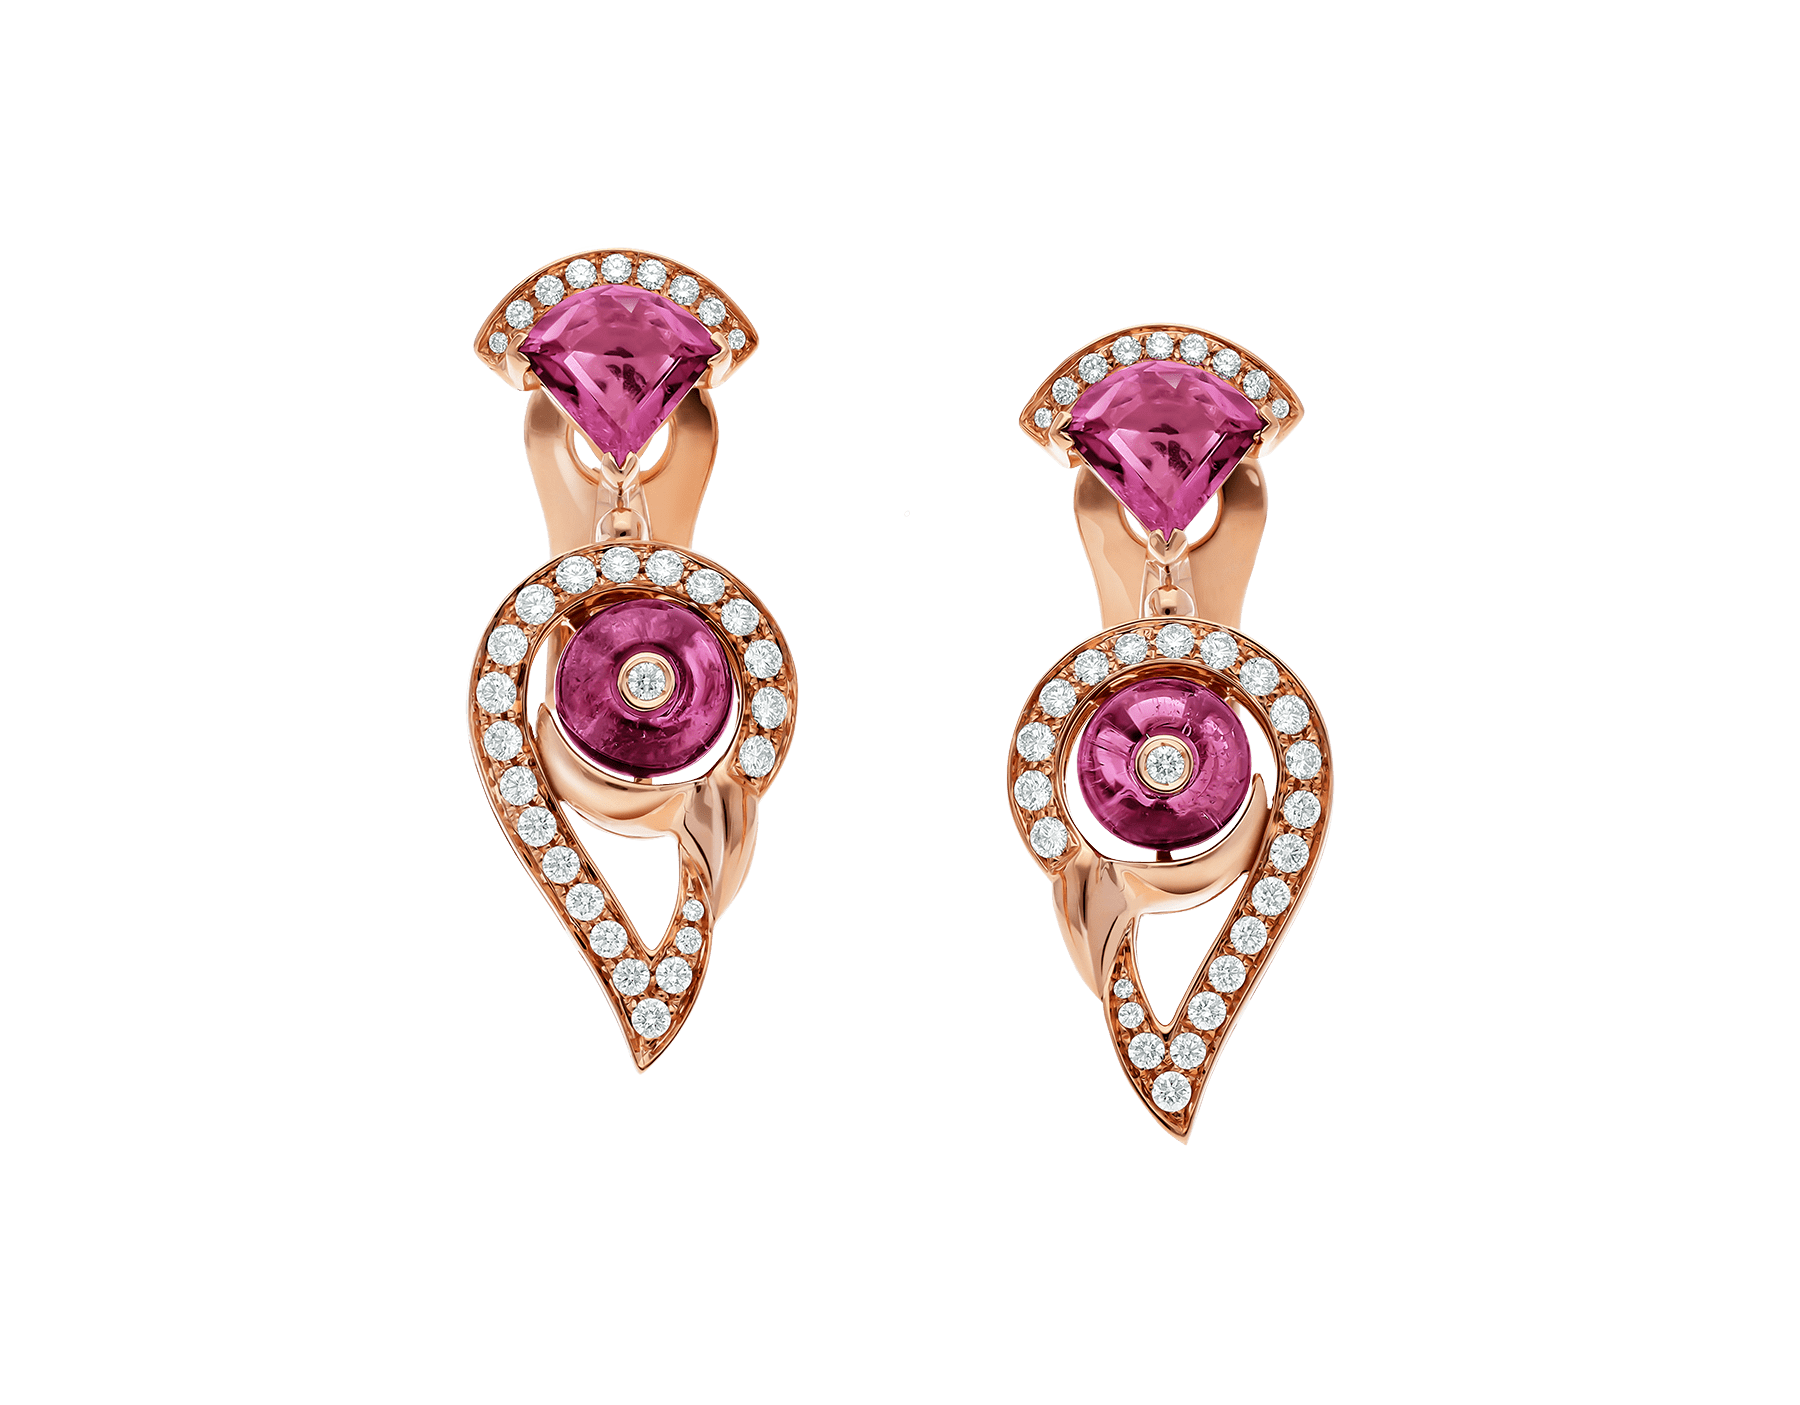 Boucles d'oreille DIVAS' DREAM en or rose 18 K serties de rubellite rose et tourmaline rose avec pavé diamants. 354079 image 1